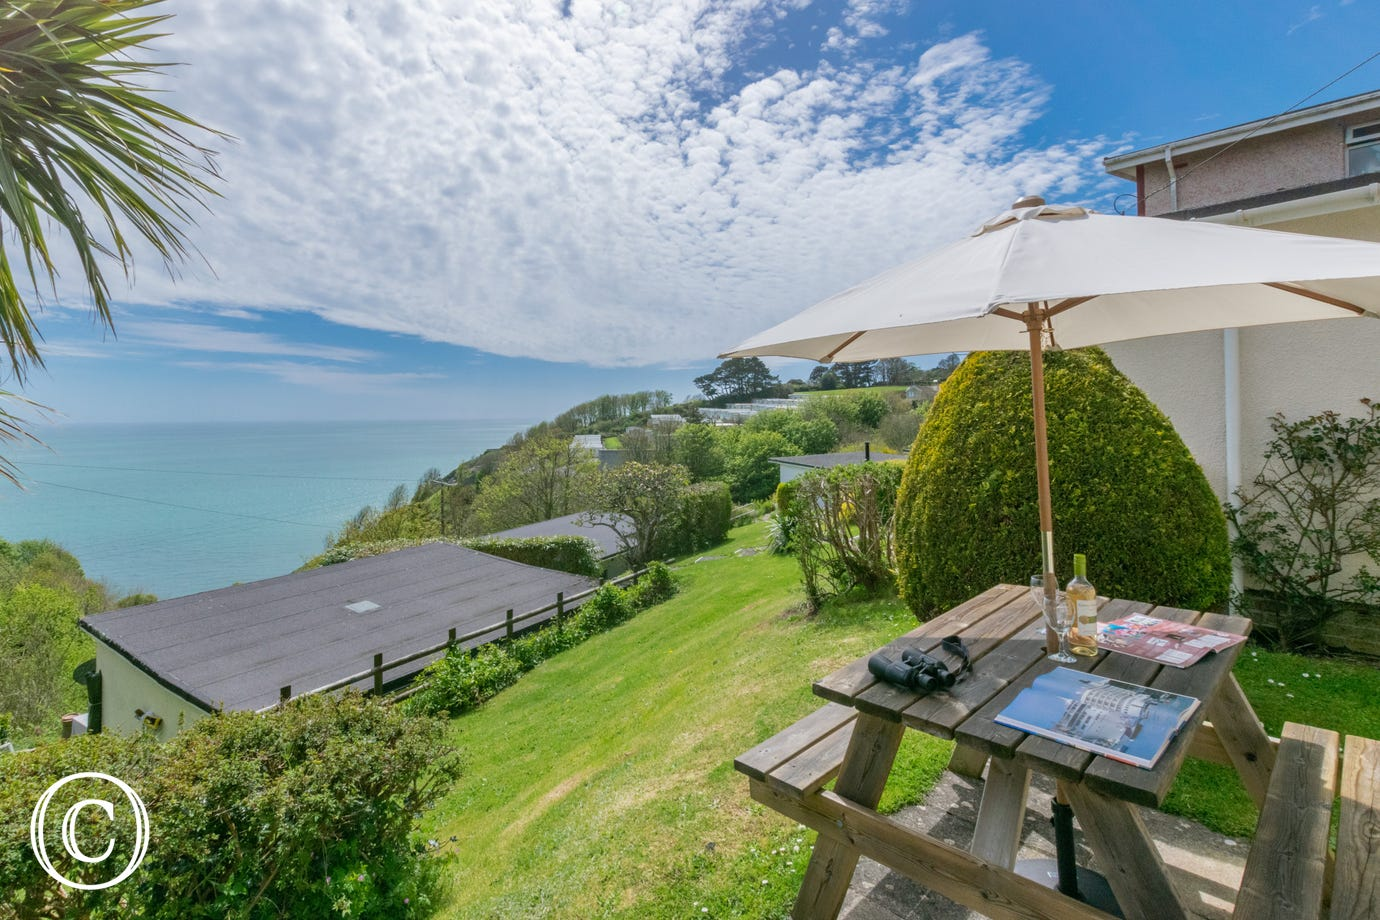 Outside: Paved patio area with picnic bench and sun parasol, perfect for 'al fresco' dining to make the most of the sea views.